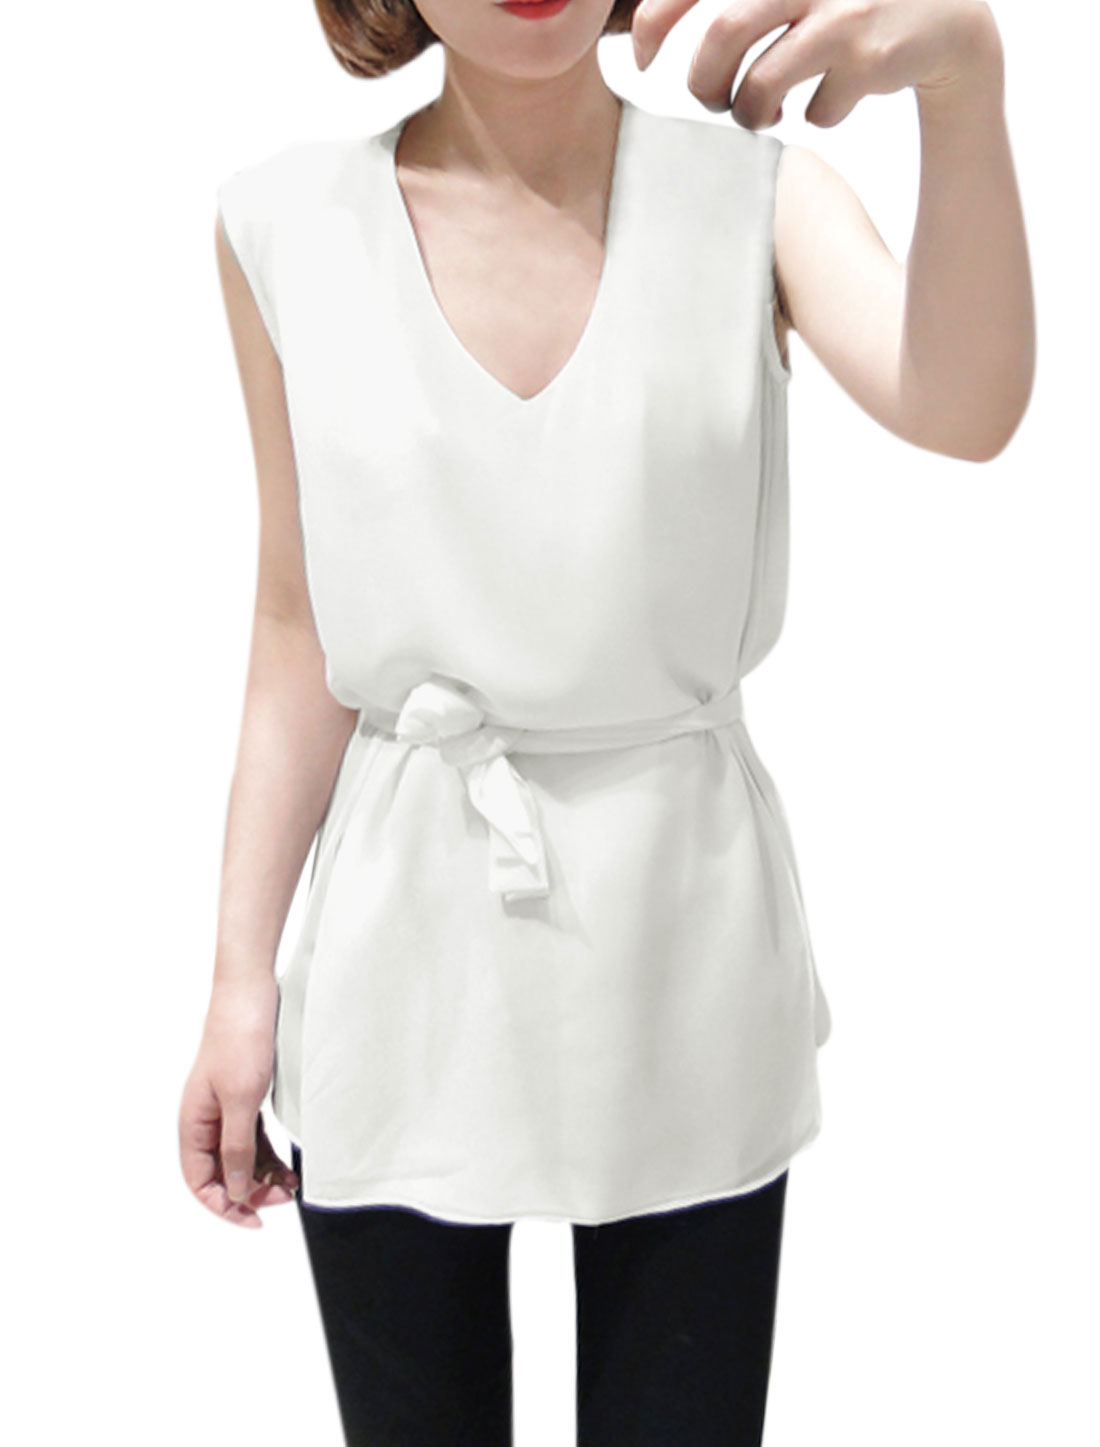 Lady Pullover Tiered Cutting Blouse w Self-Tie Waist Strap White XS